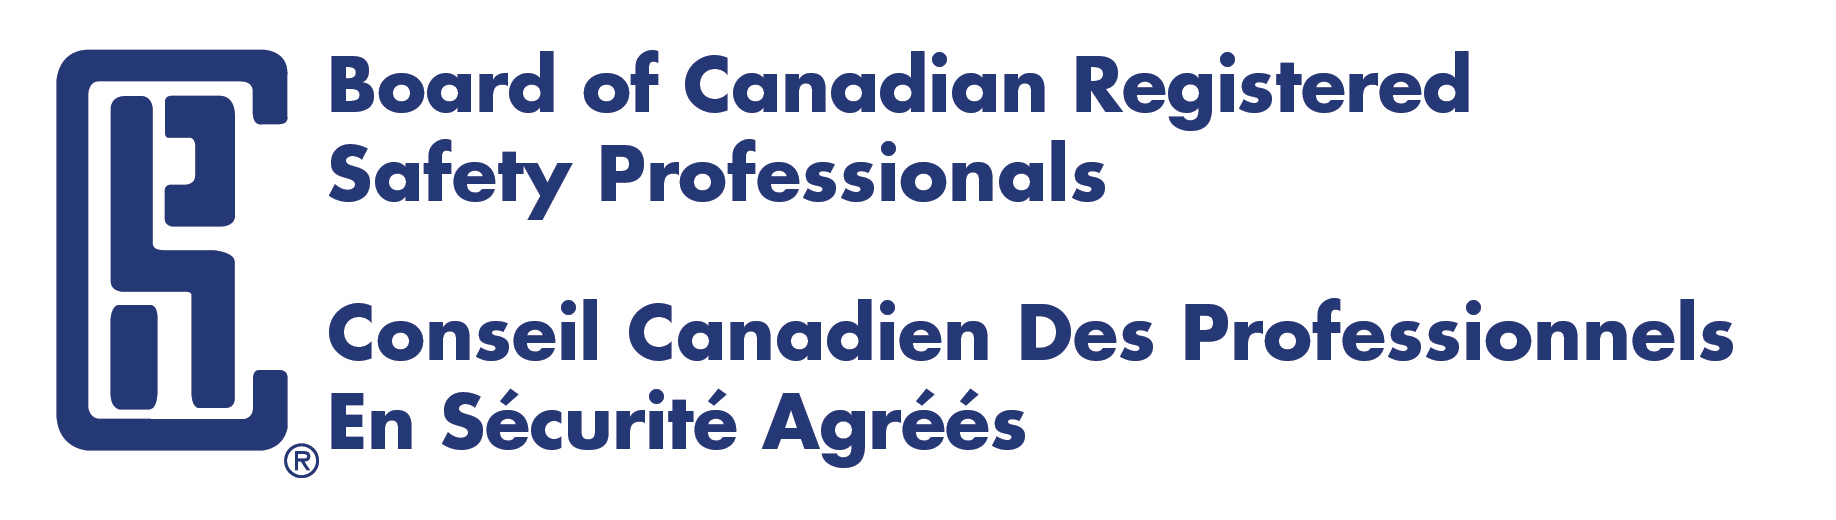 Board of Canadian Registered Safety Professionals - BCRSP